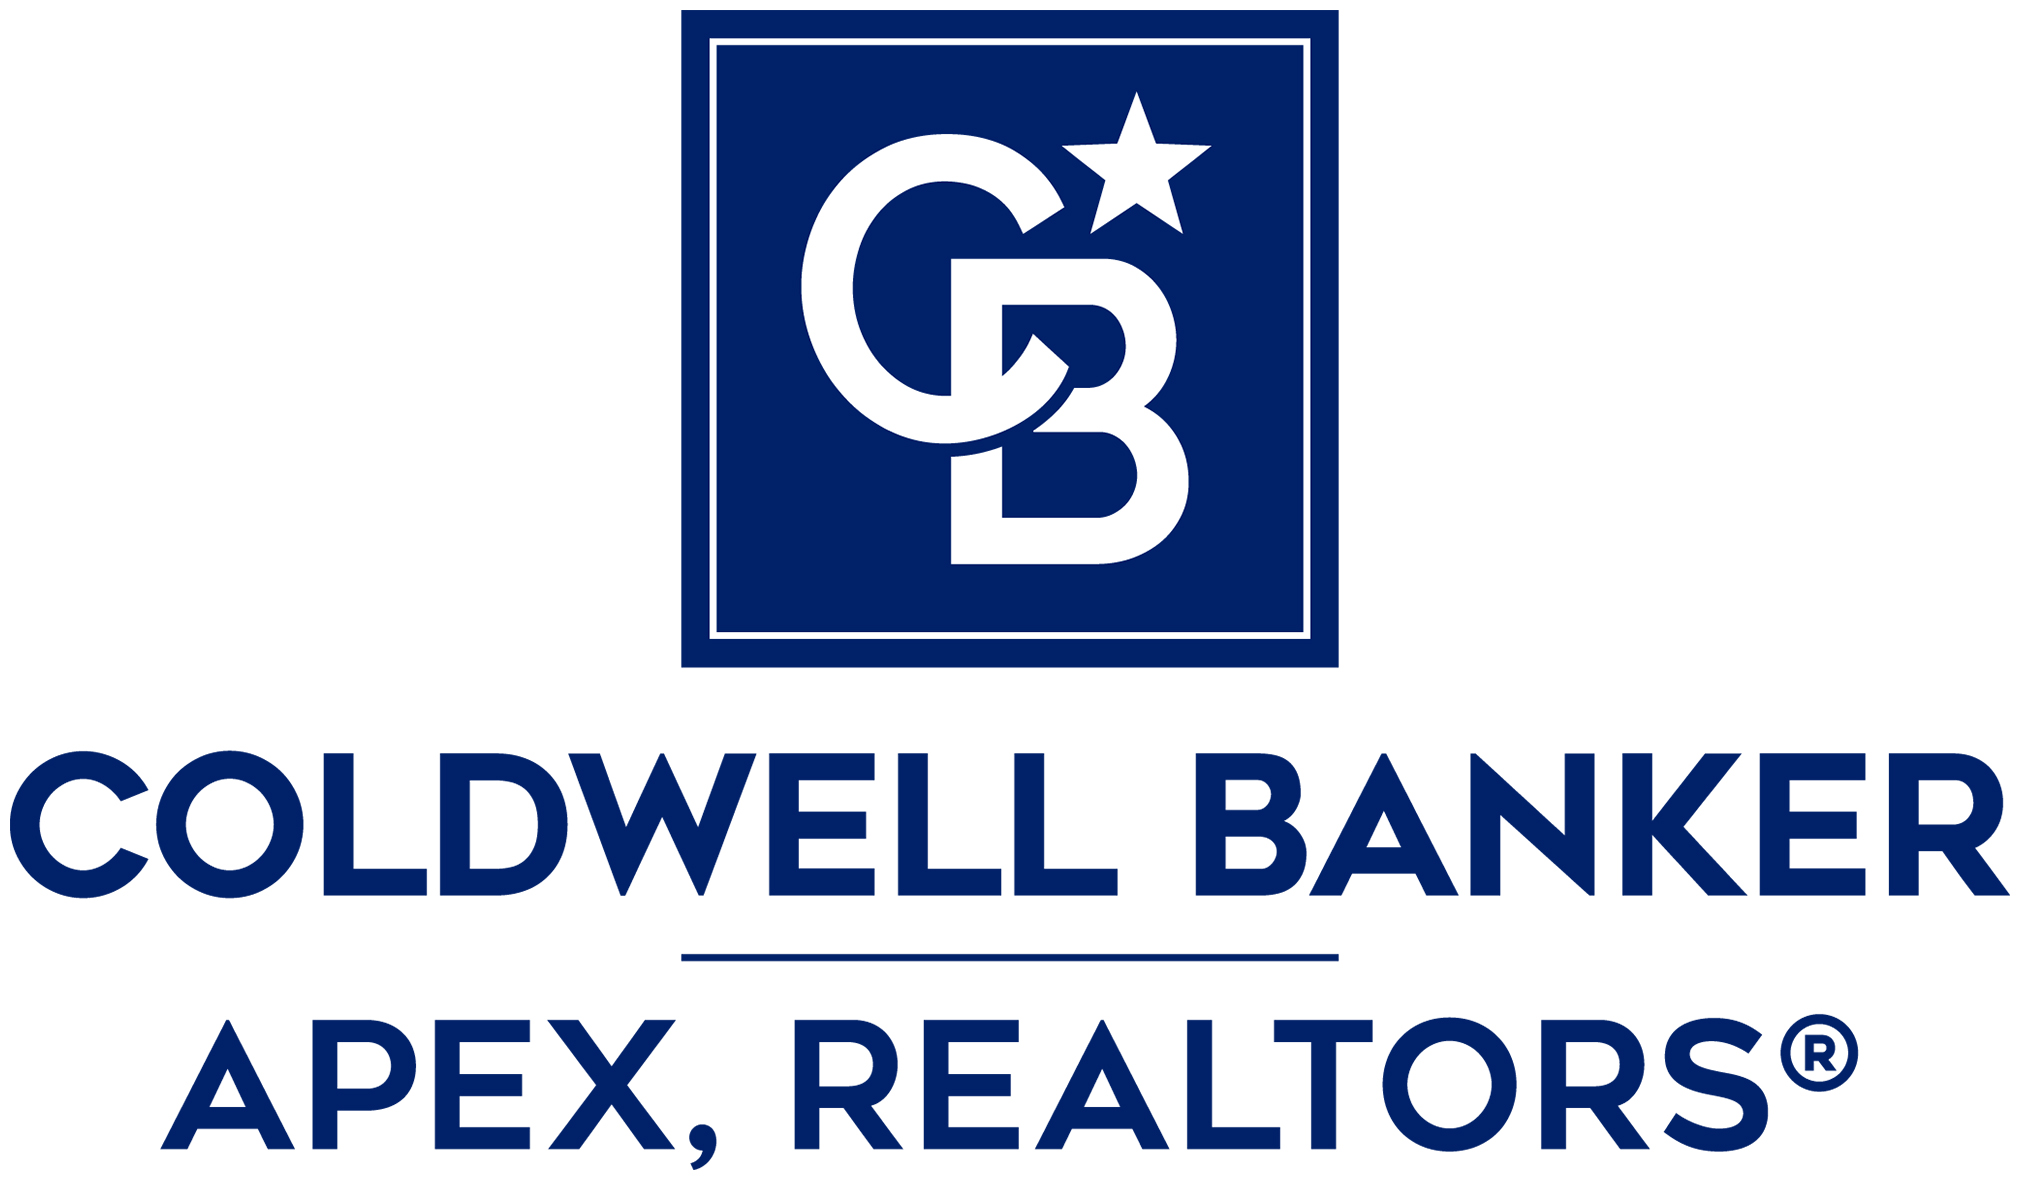 Caryn James - Coldwell Banker Apex Realtors